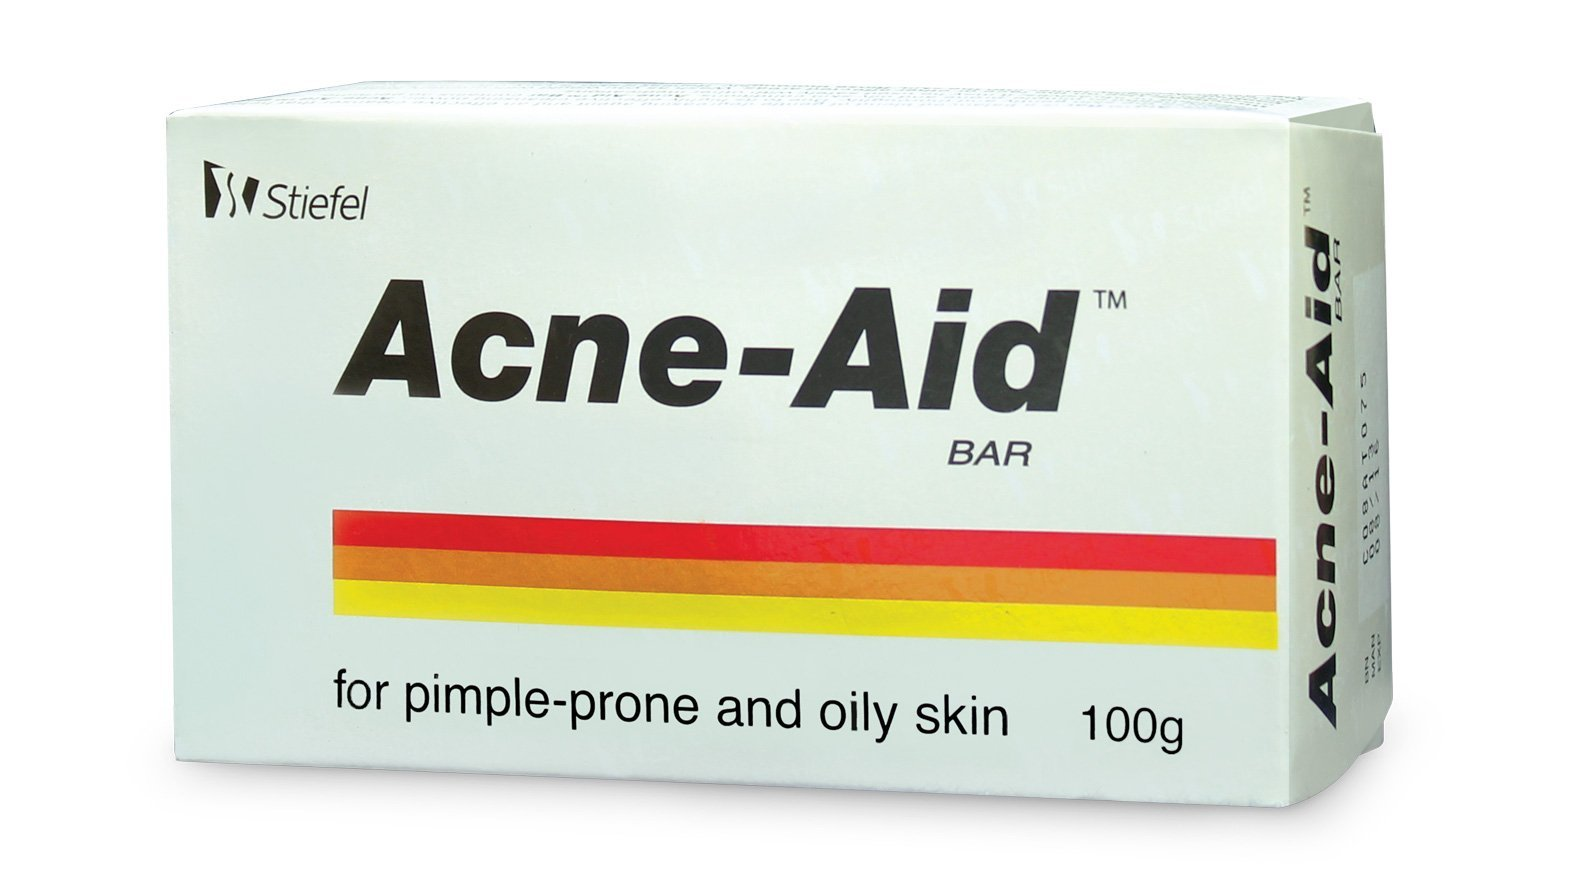 Stiefel Acne-Aid Soap Bar 100G Triple Pack